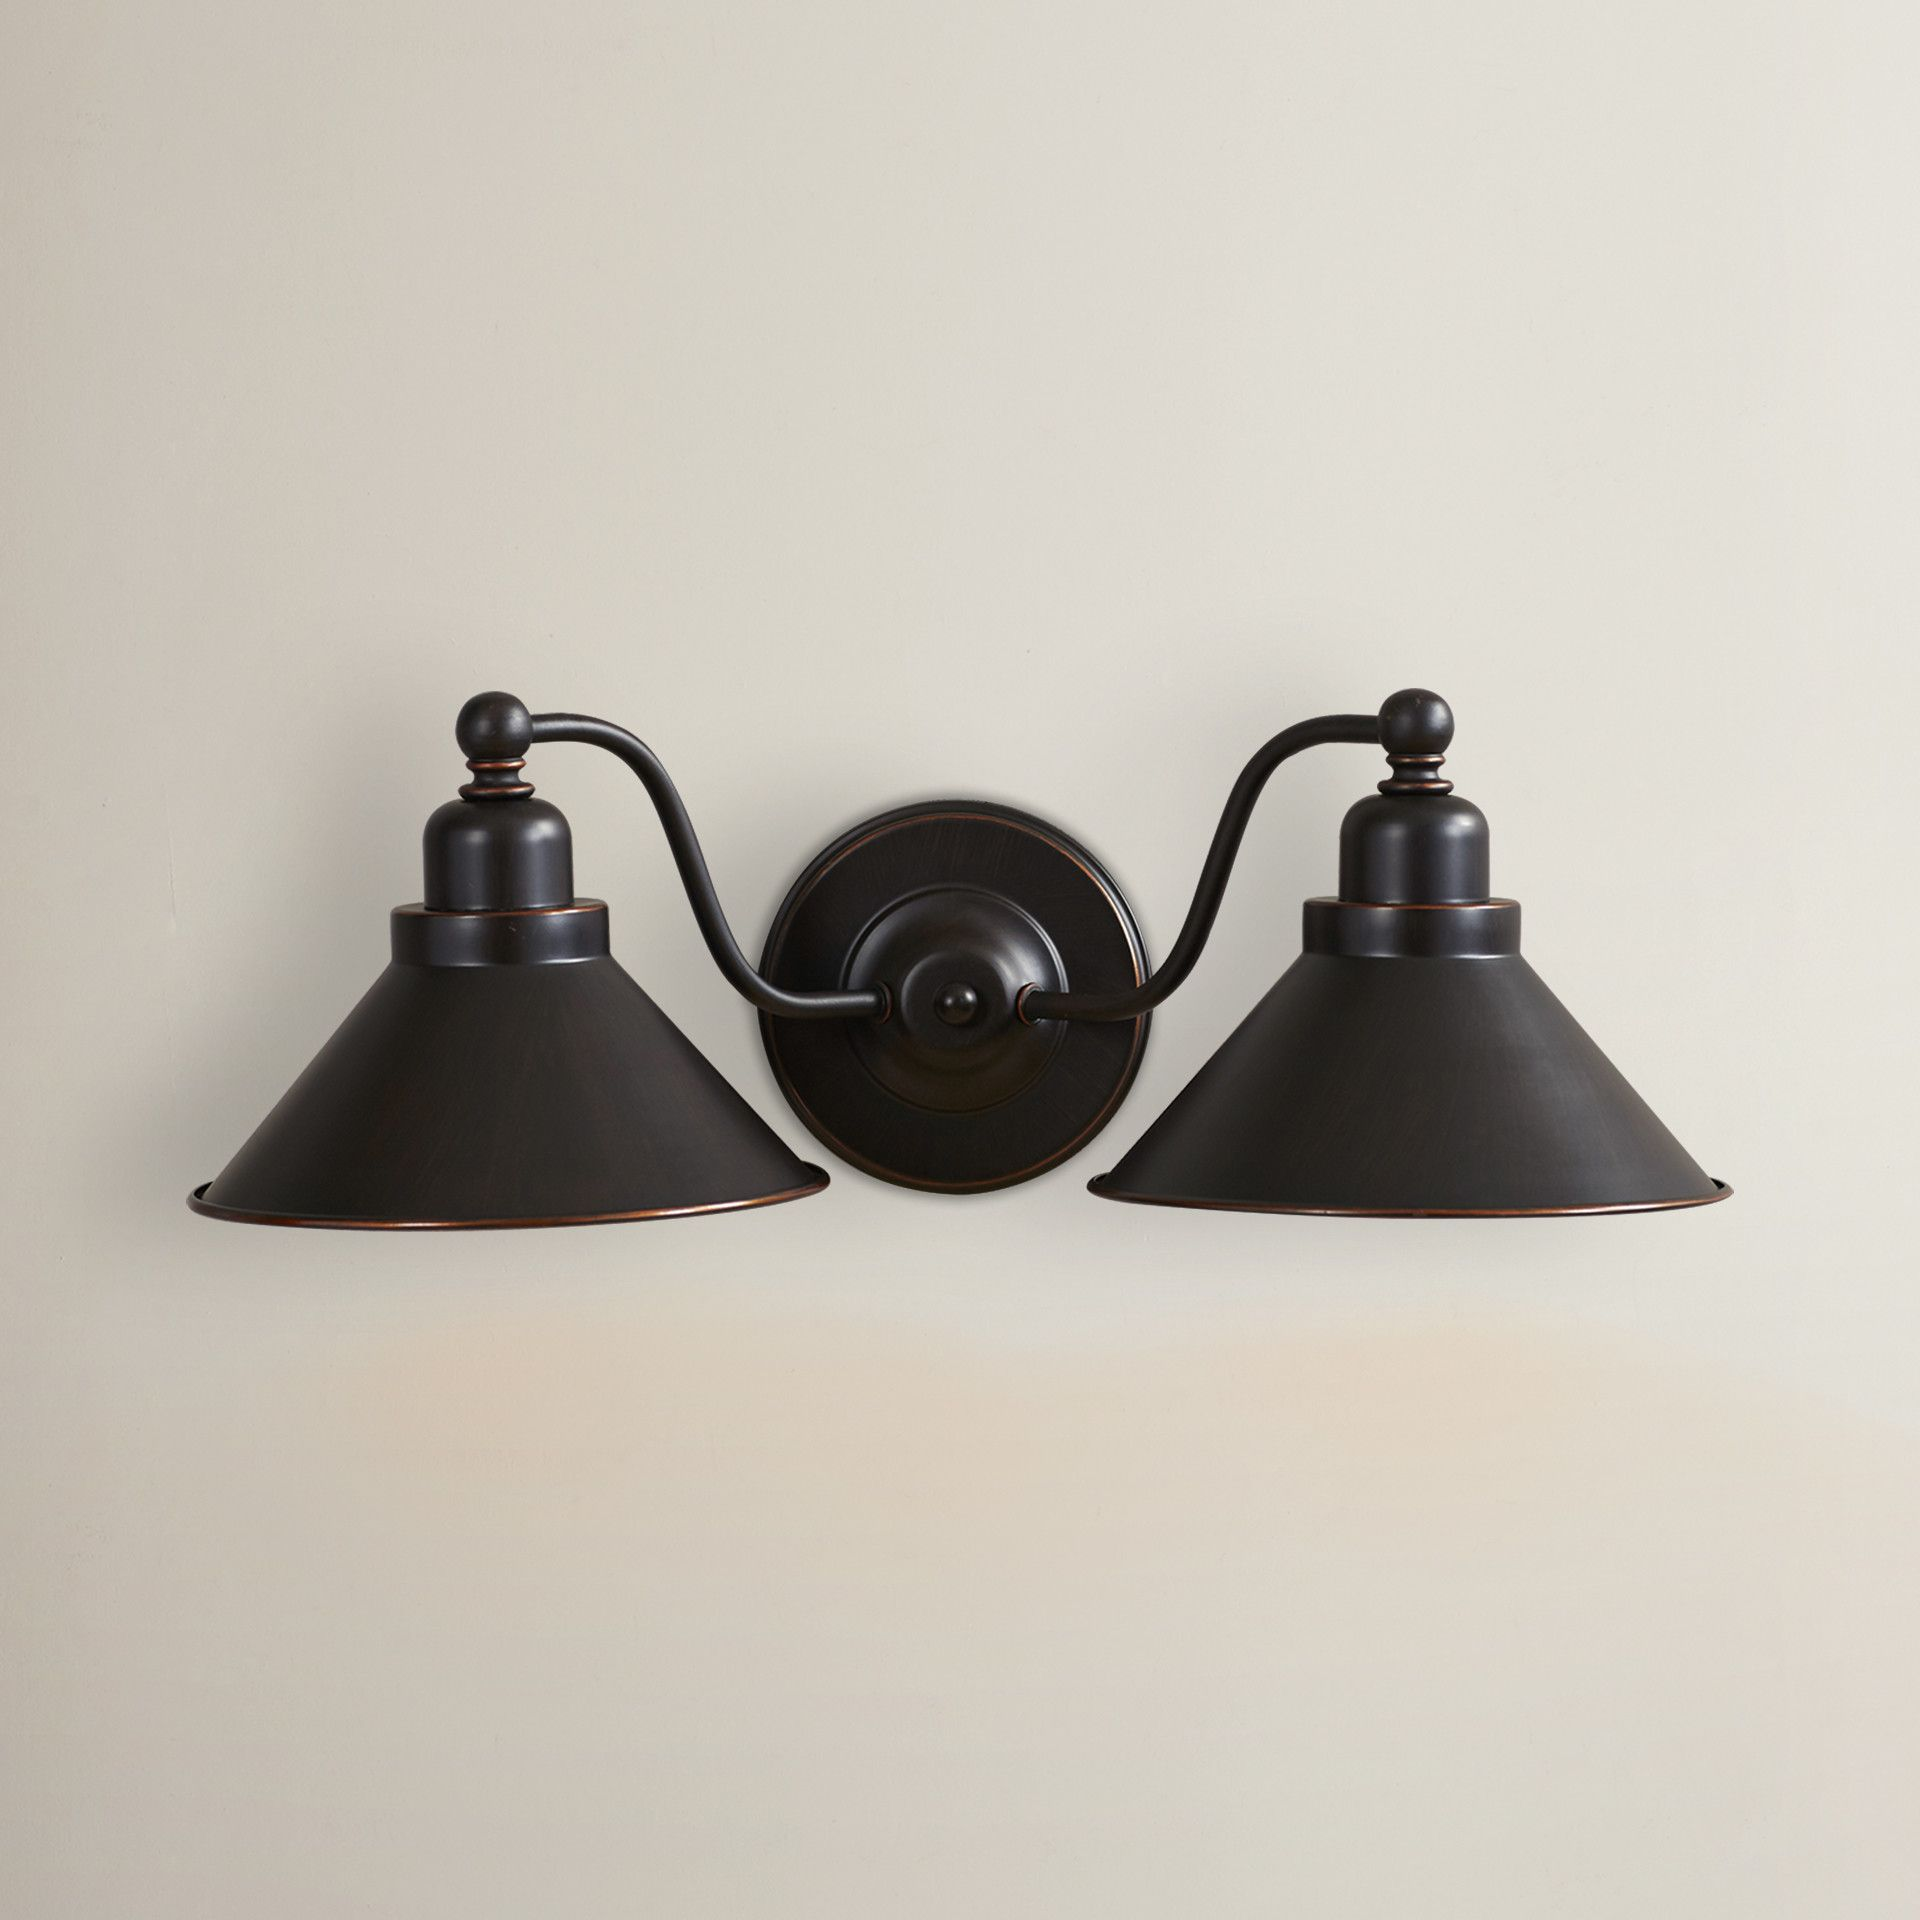 Trent Austin Design Schaff 2 Light Wall Sconce in Mission Dust